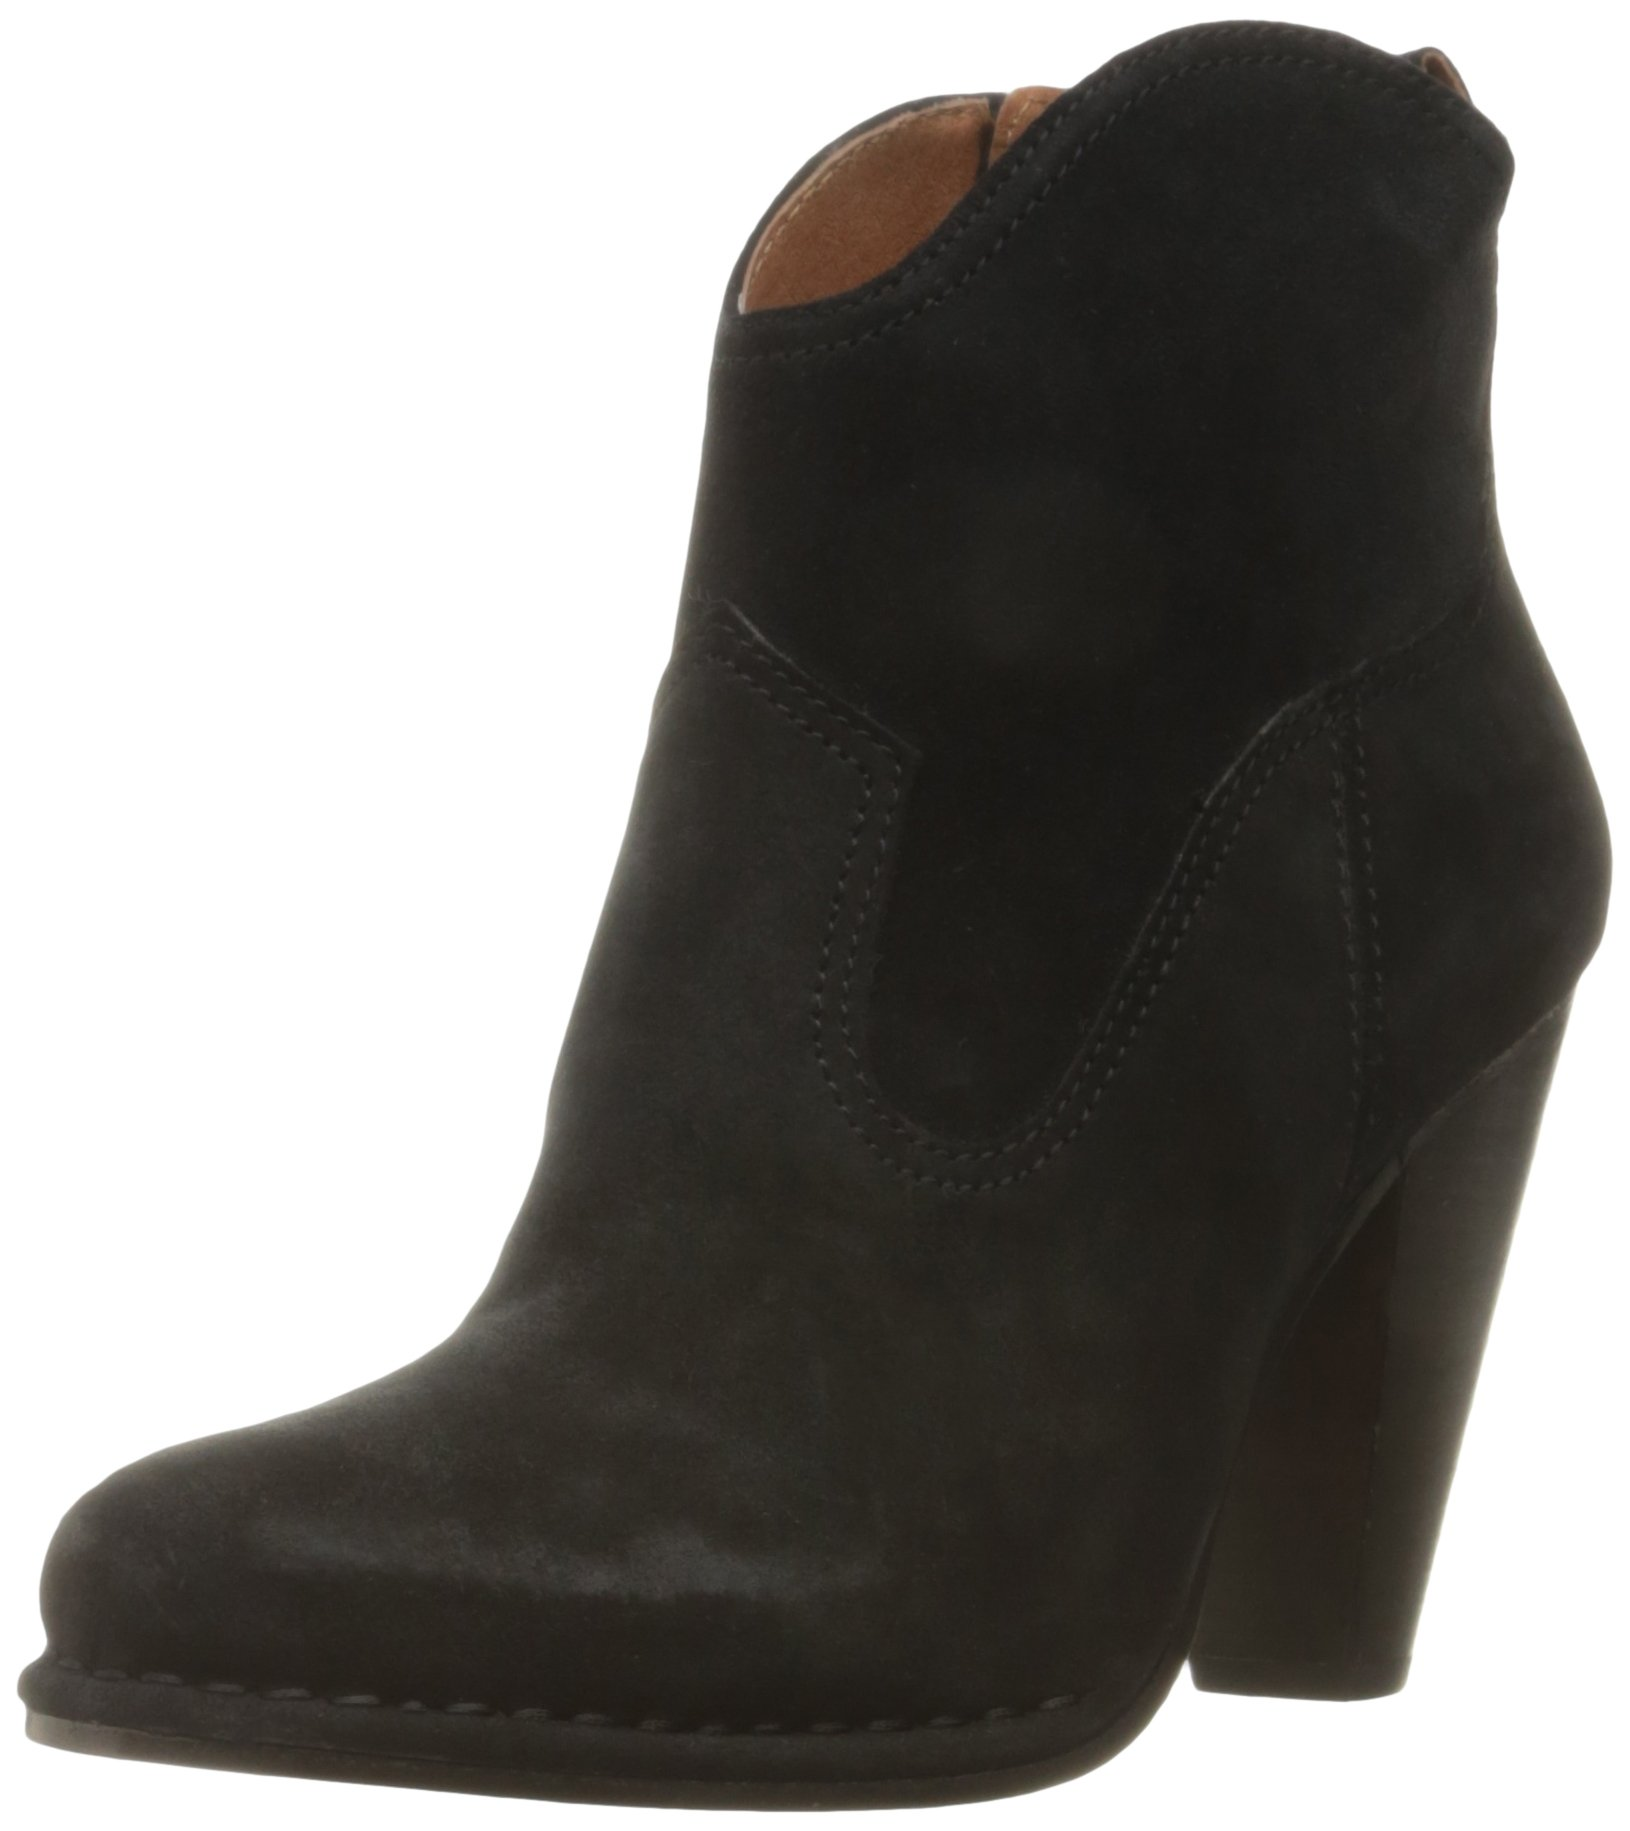 FRYE Women's Madeline Short Suede Boot, Black, 8 M US by FRYE